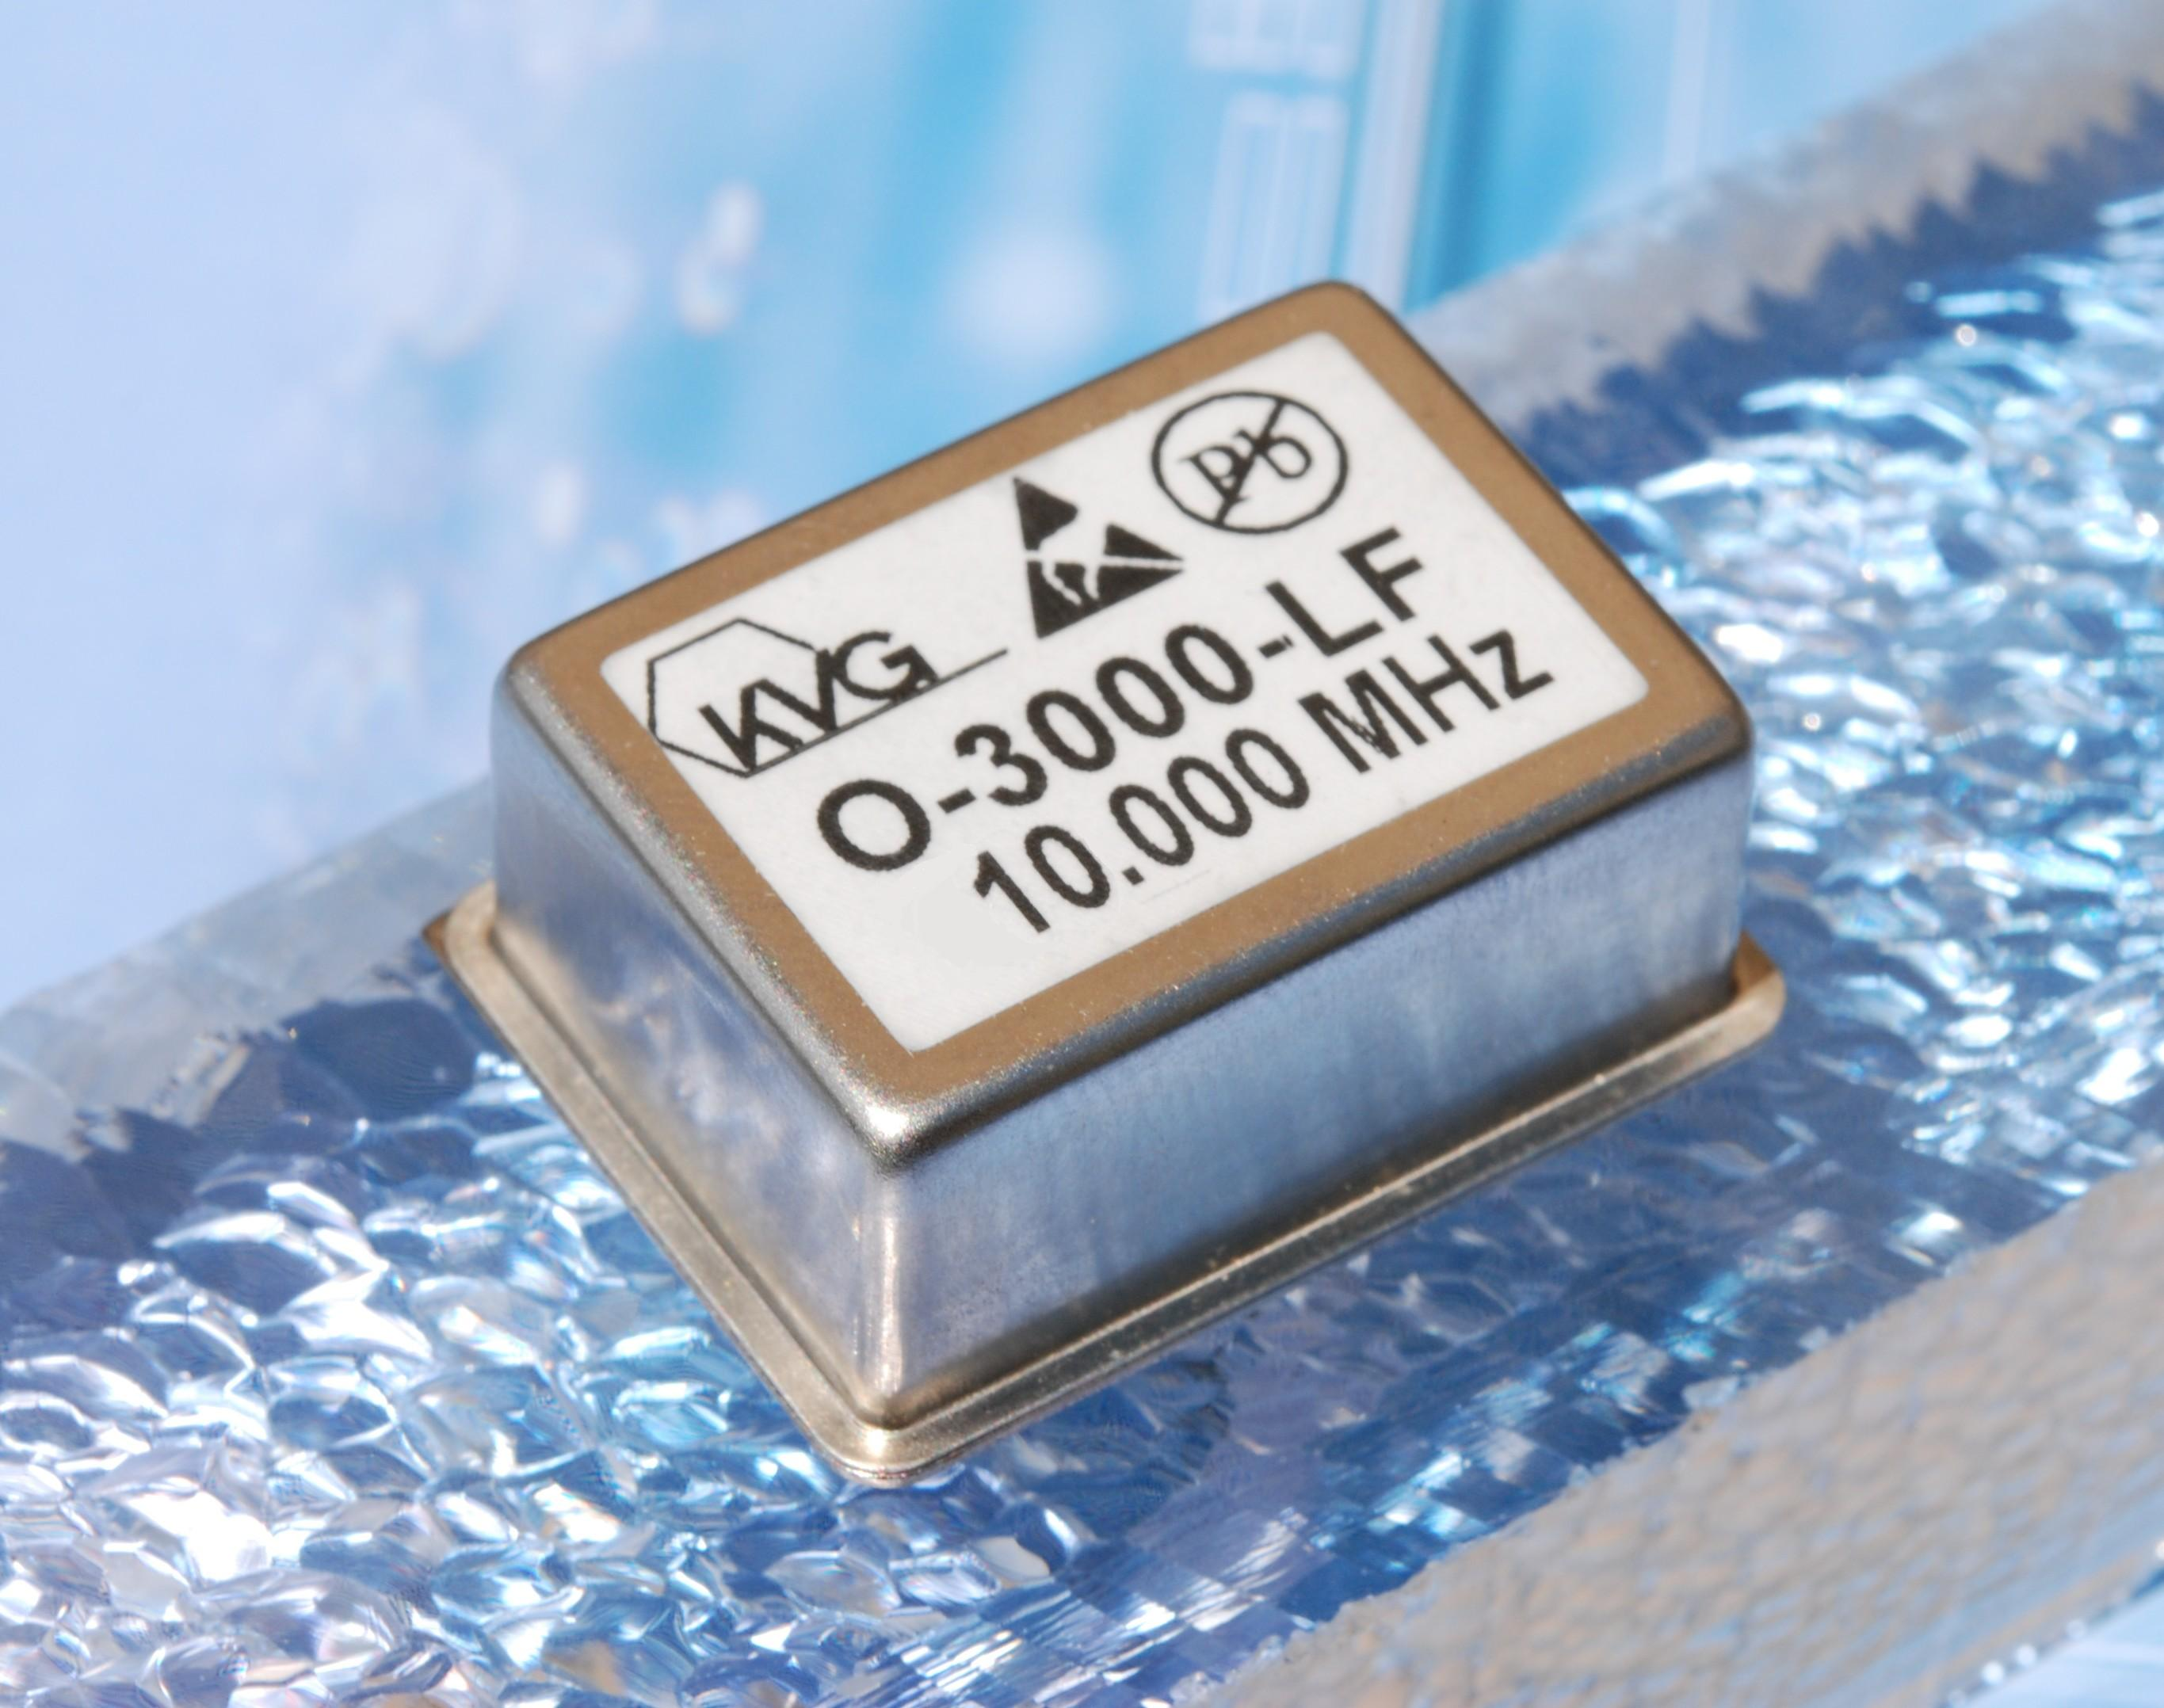 DO-30-Double OCXO is a 10 000 MHz high performance 'Oven